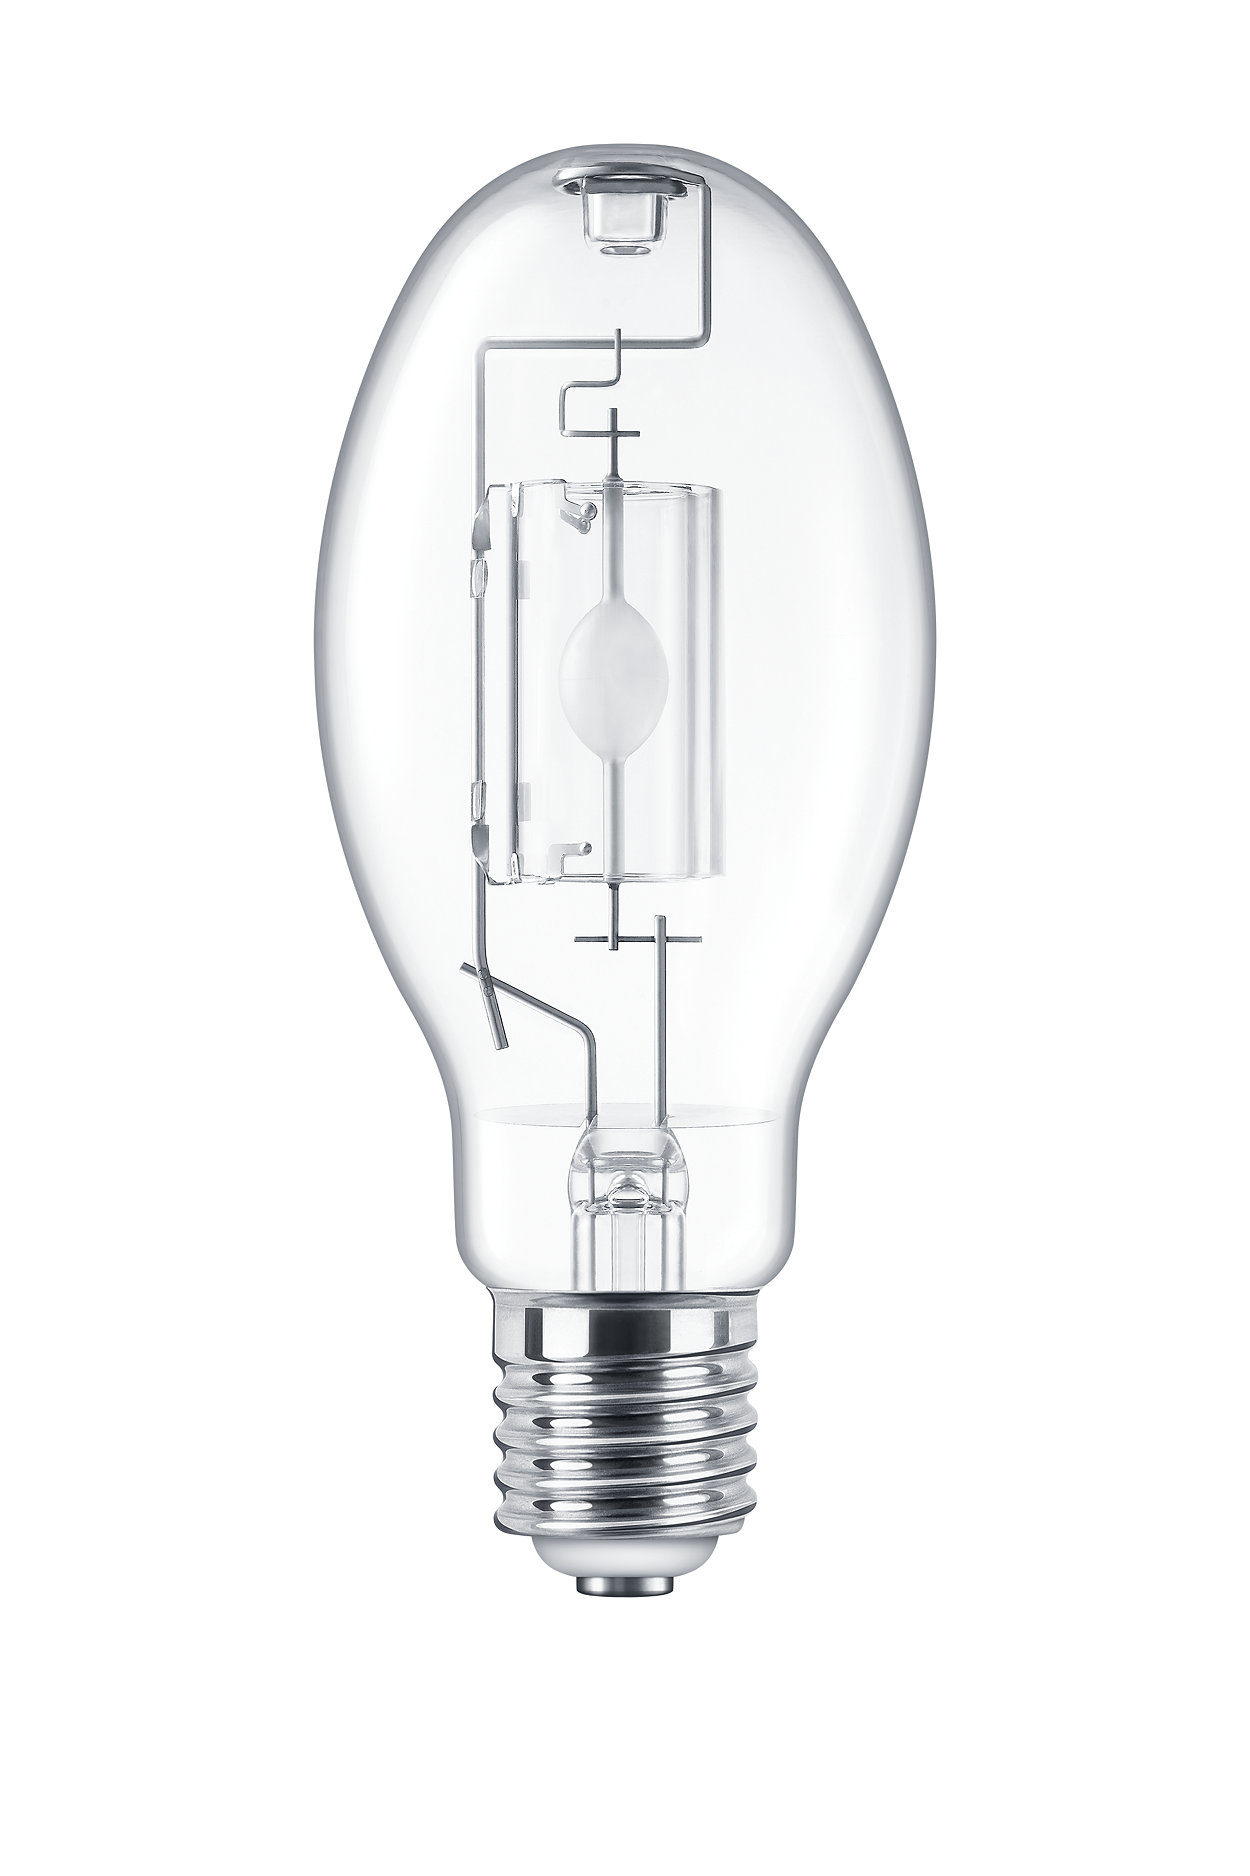 Direct retrofit with immediate energy savings for quartz metal halide